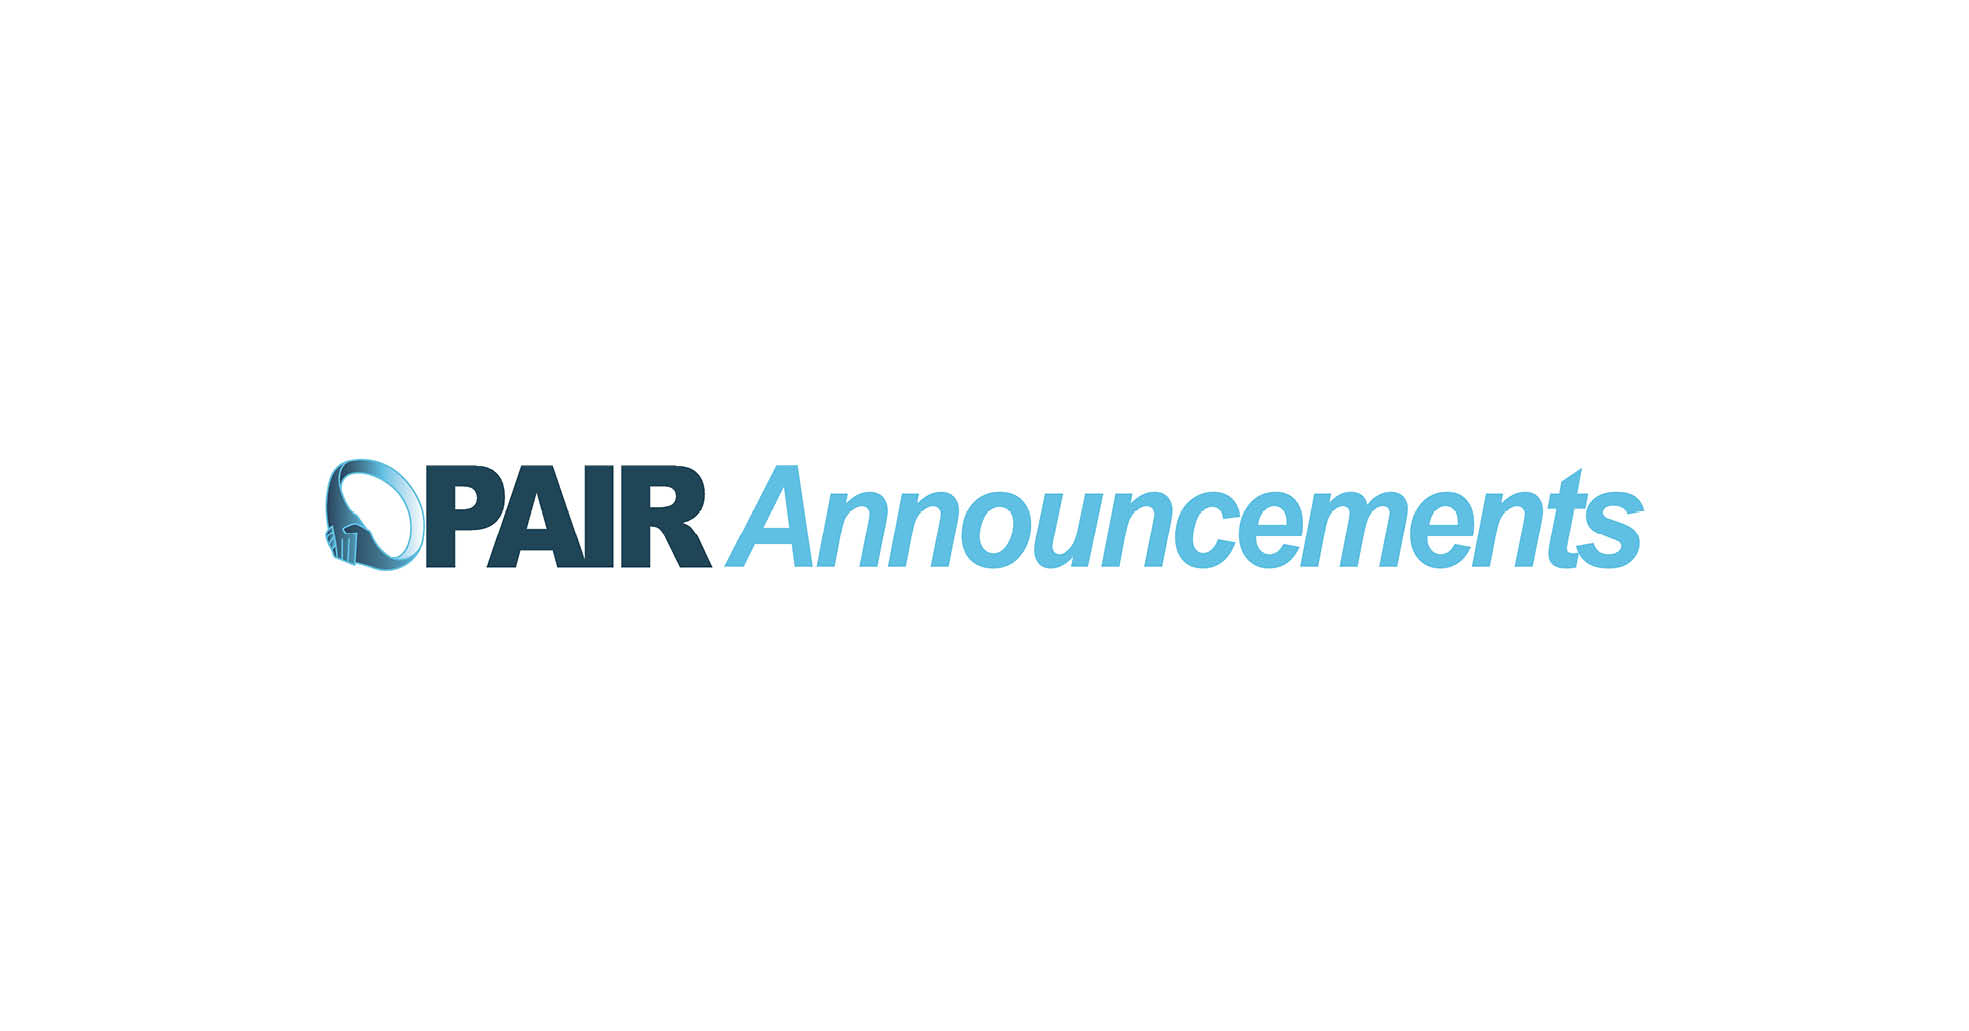 Branding for PAIR's Announcements Emails